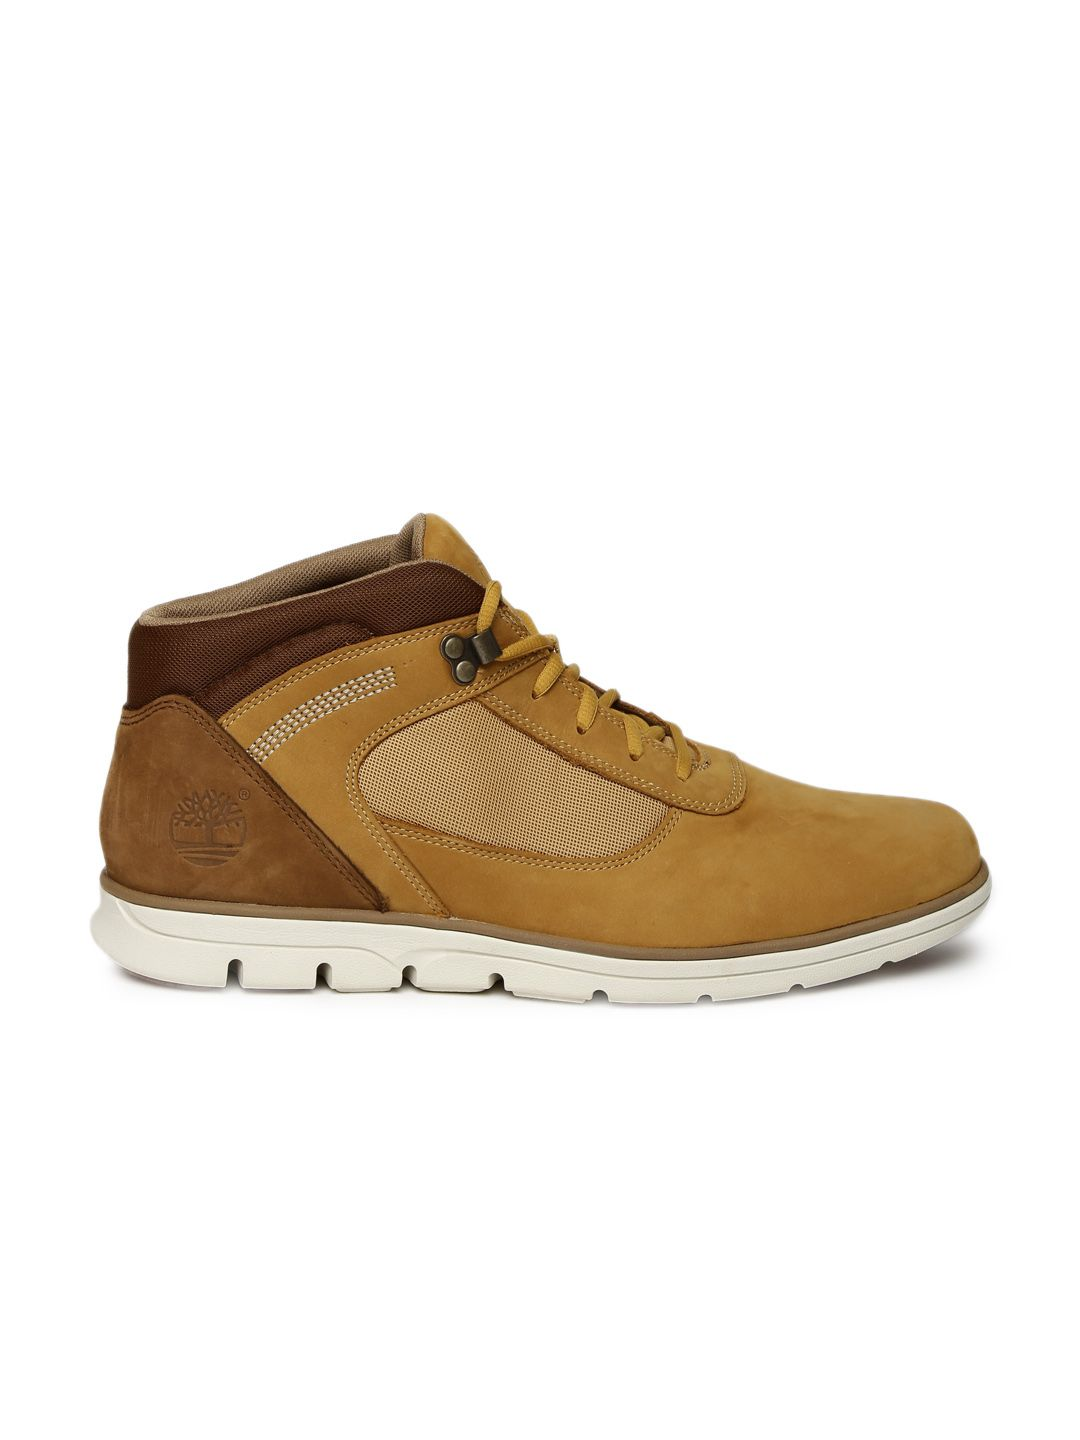 33596b6a3686 Buy Timberland Men Tan Solid Leather BRADSTREET FL HIKER High Top Flat Boots  - Casual Shoes for Men